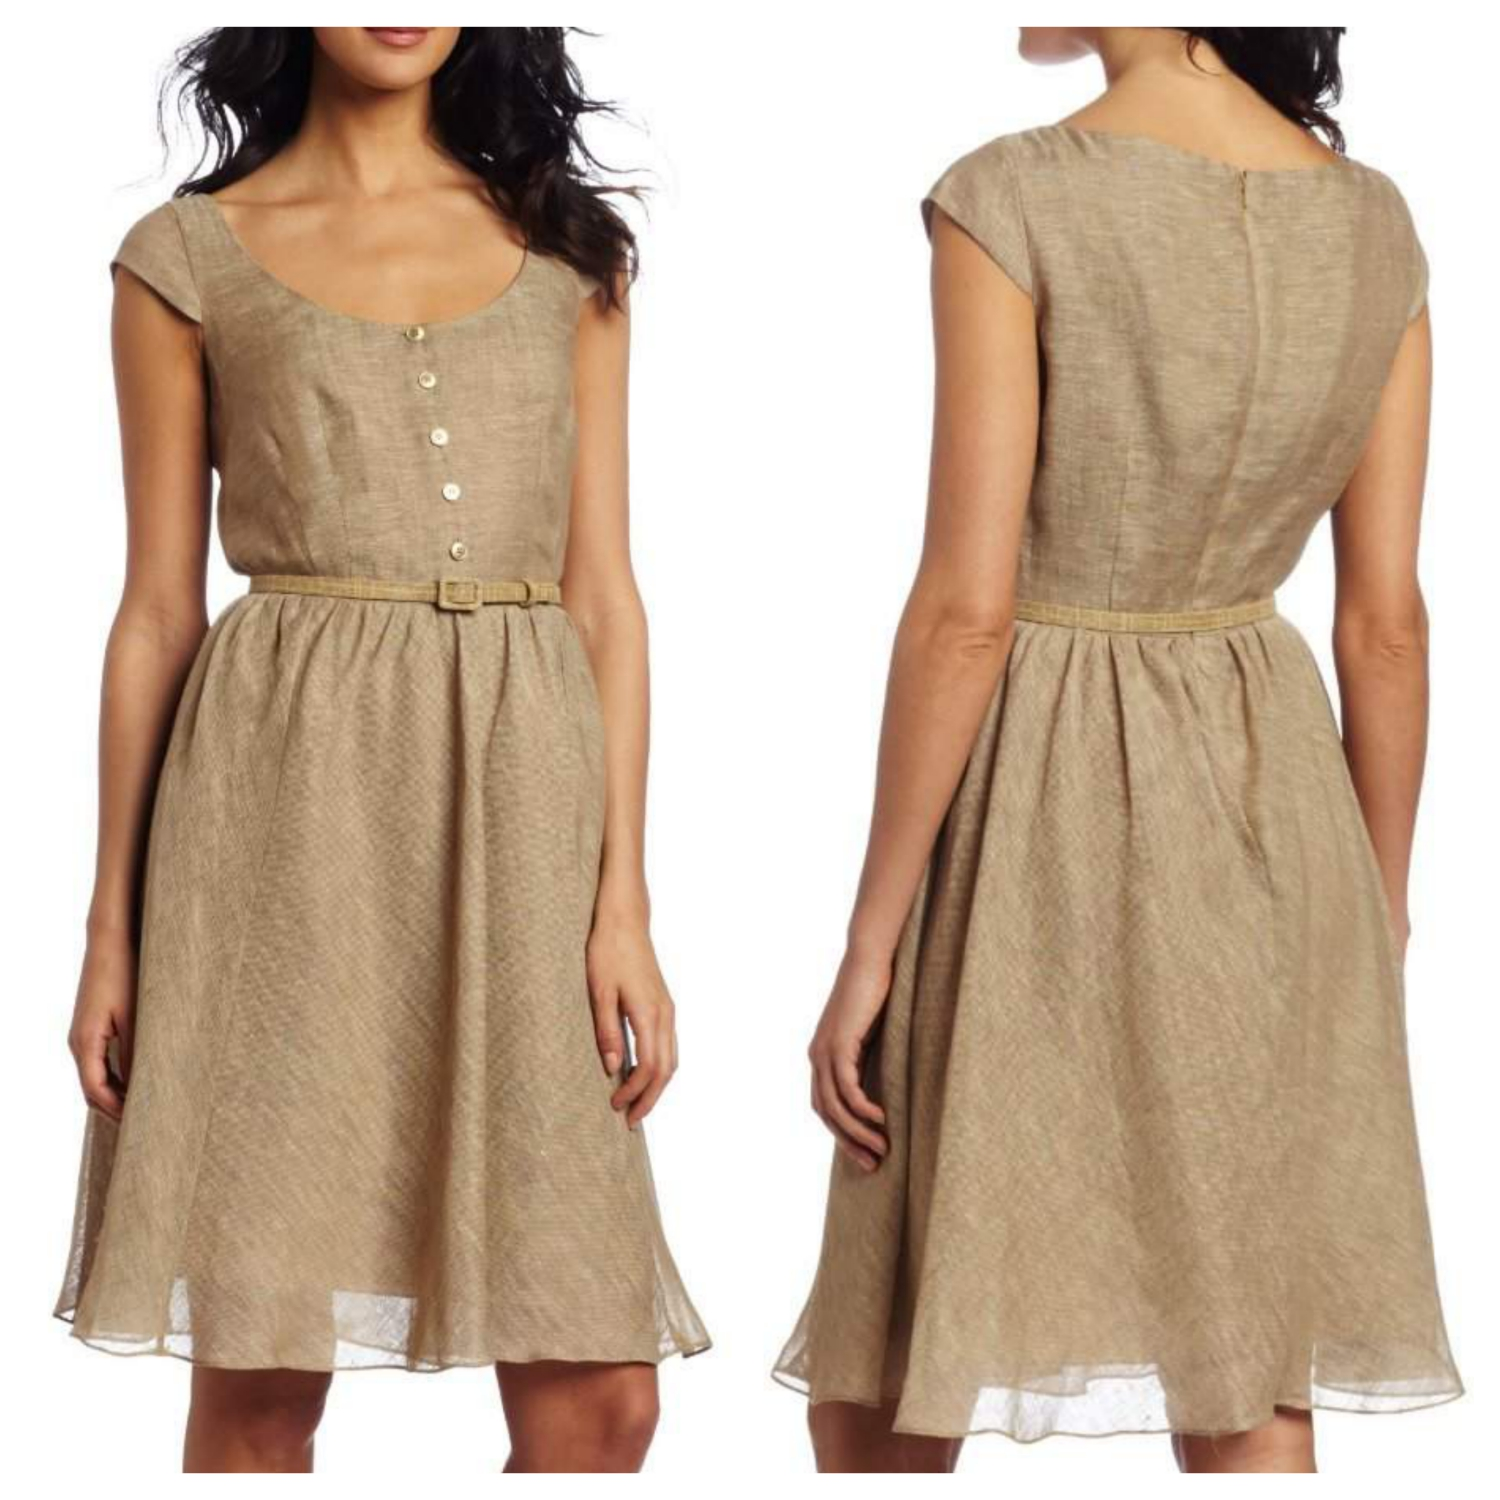 Linen Dresses For Women Online Custom Made To Order